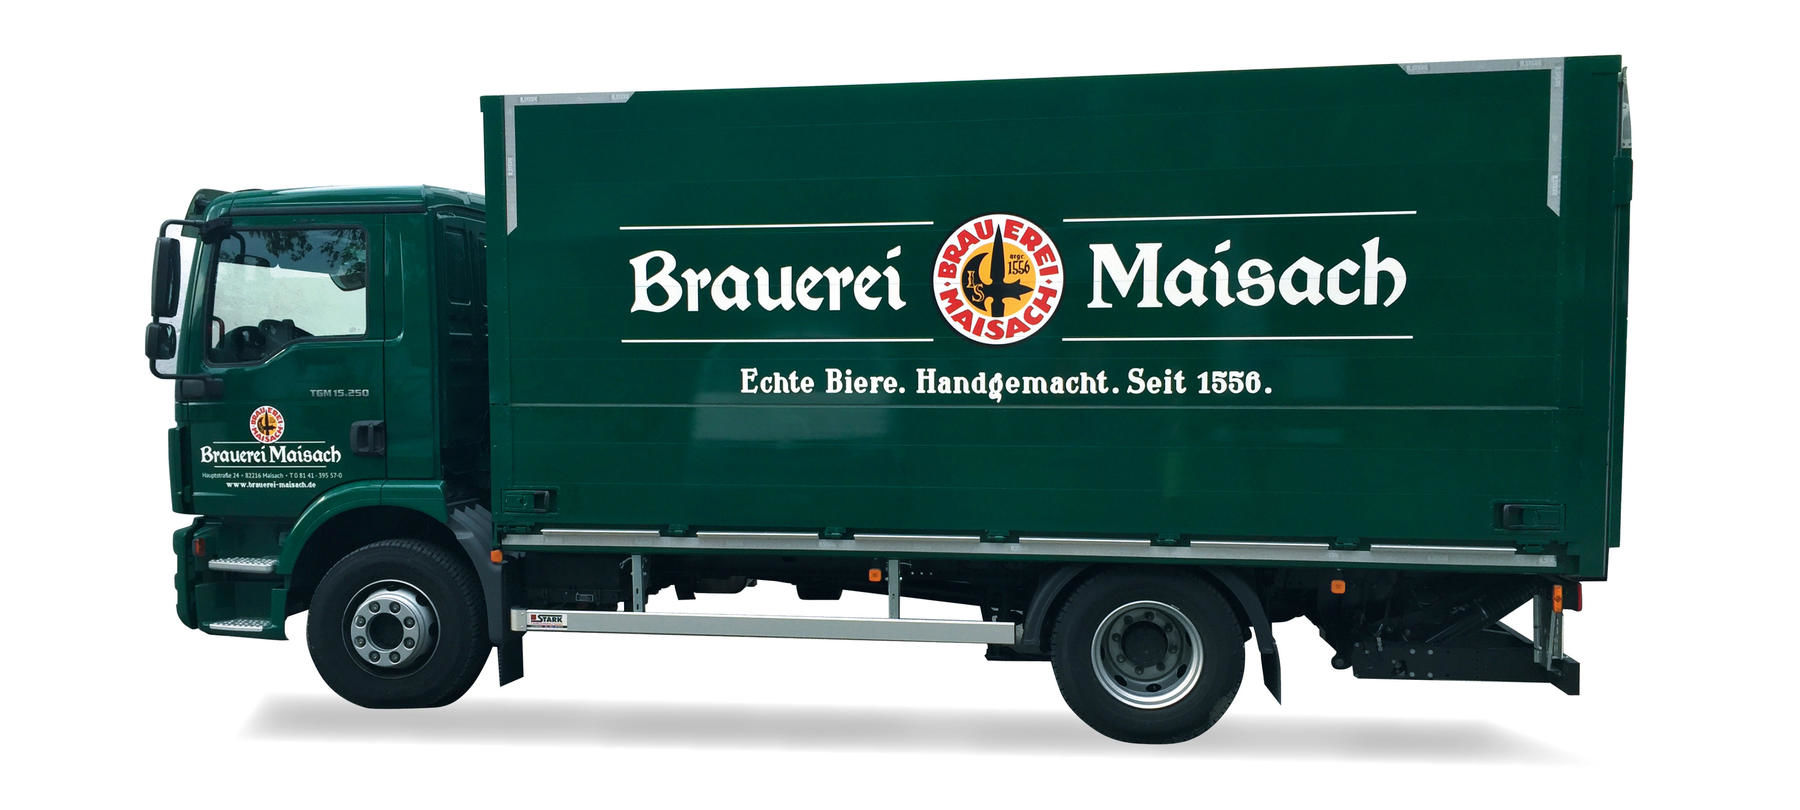 Brauerei Maisach, Corporate Design, LKW